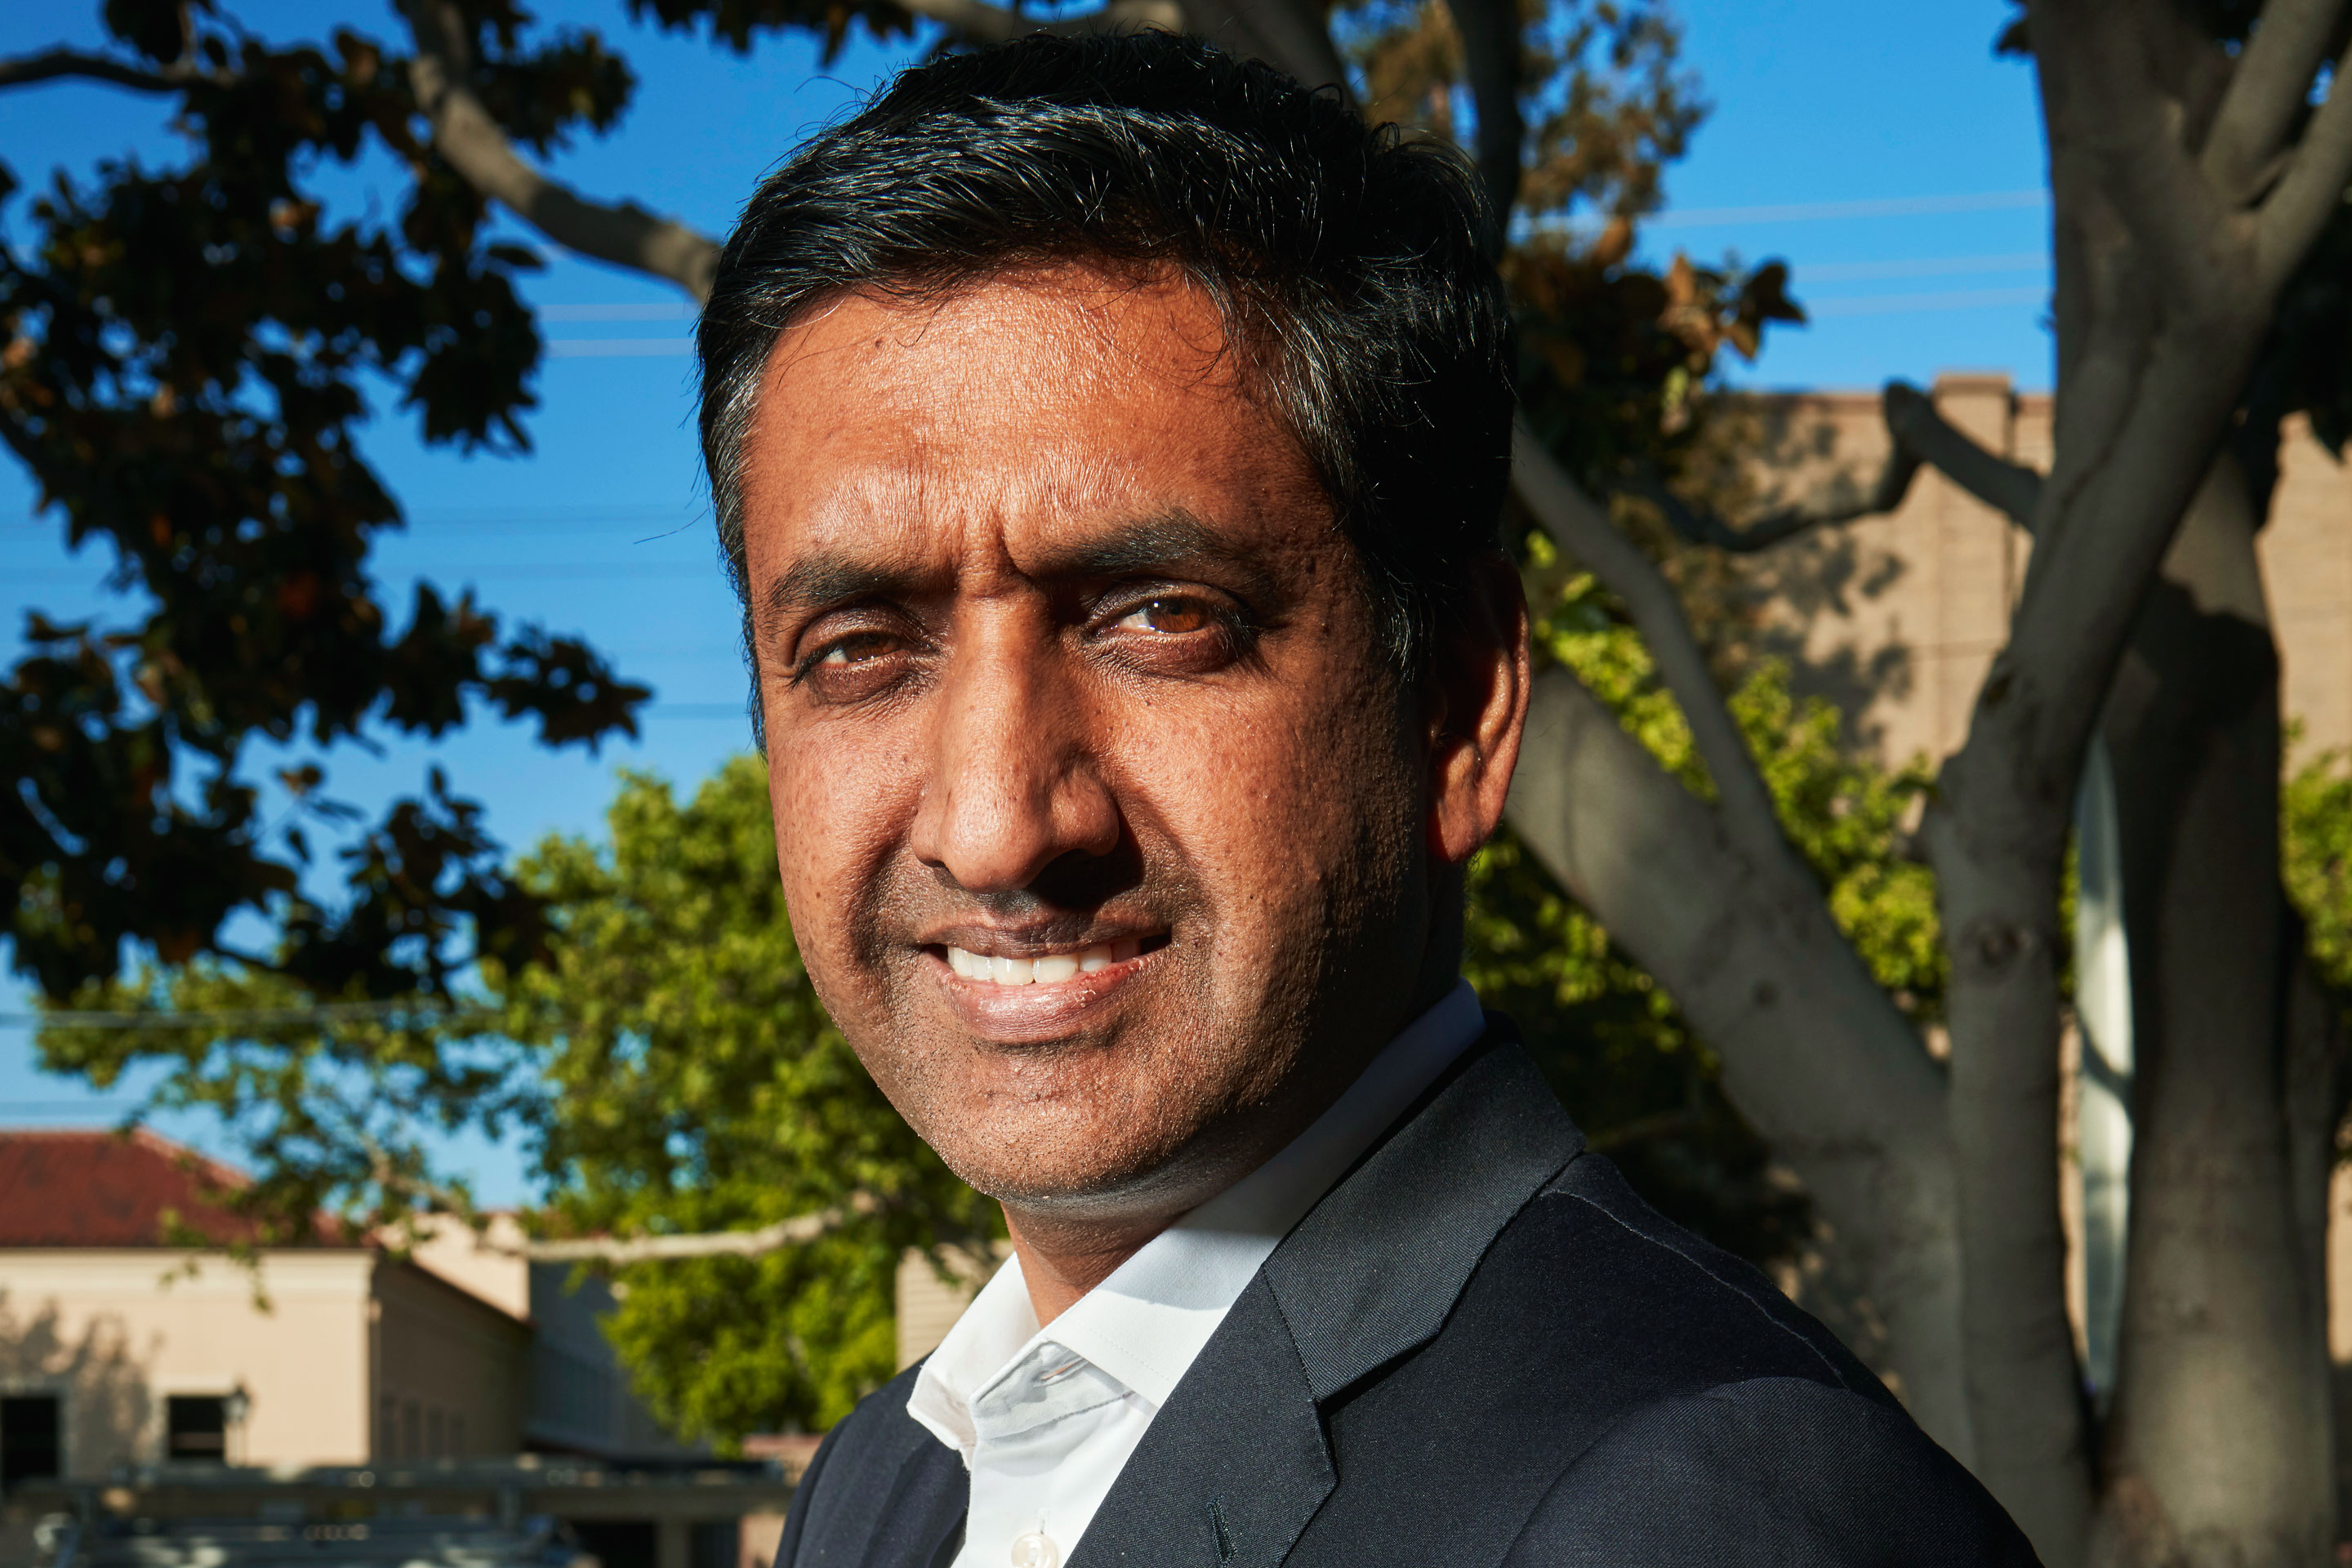 Khanna outside his Santa Clara, Calif. district office.